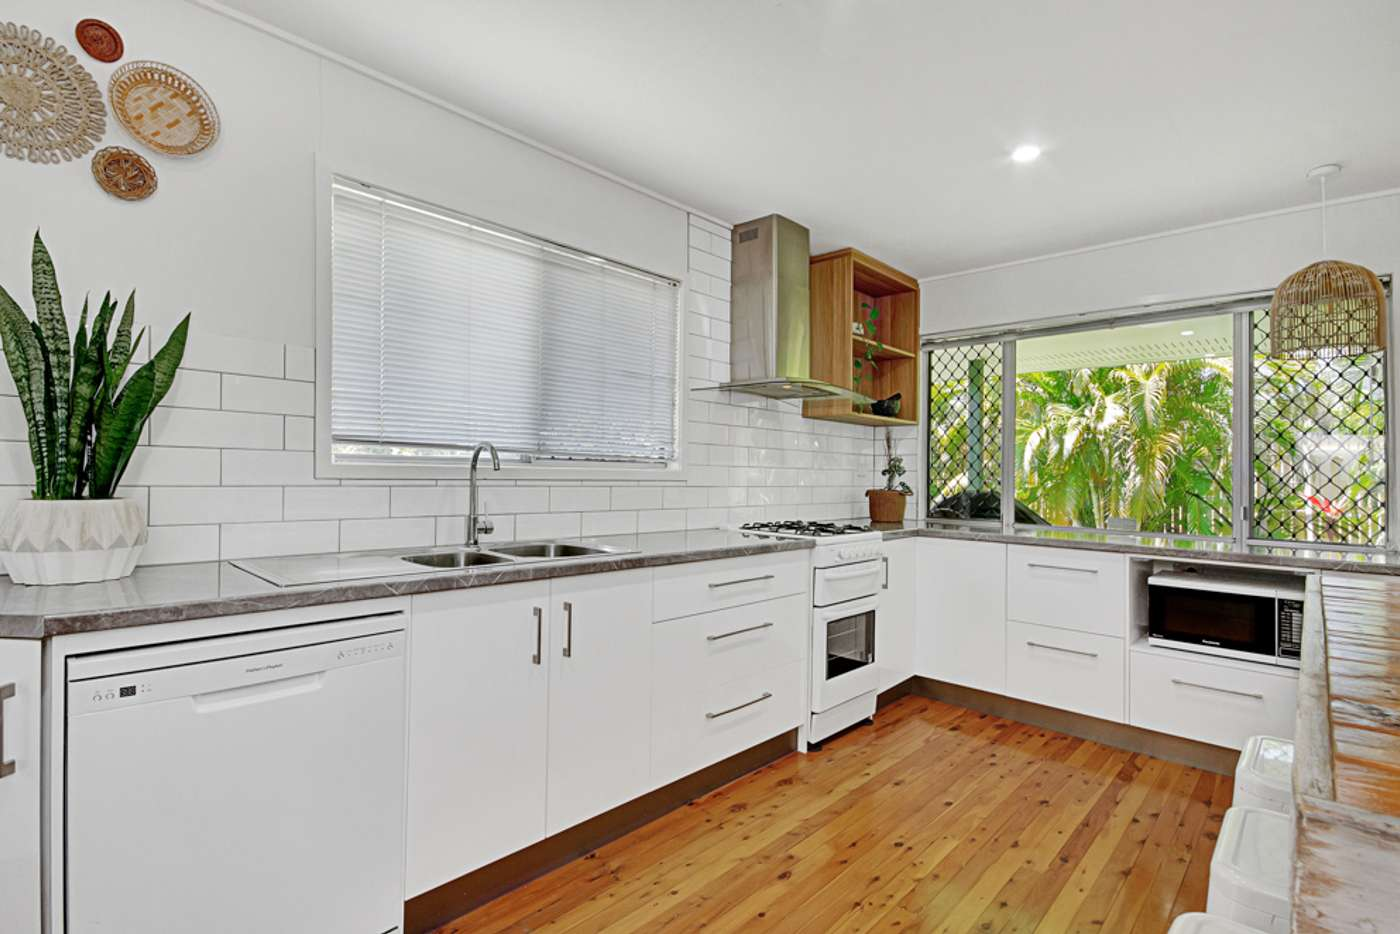 Fifth view of Homely house listing, 37 Dalrymple Drive, Toolooa QLD 4680